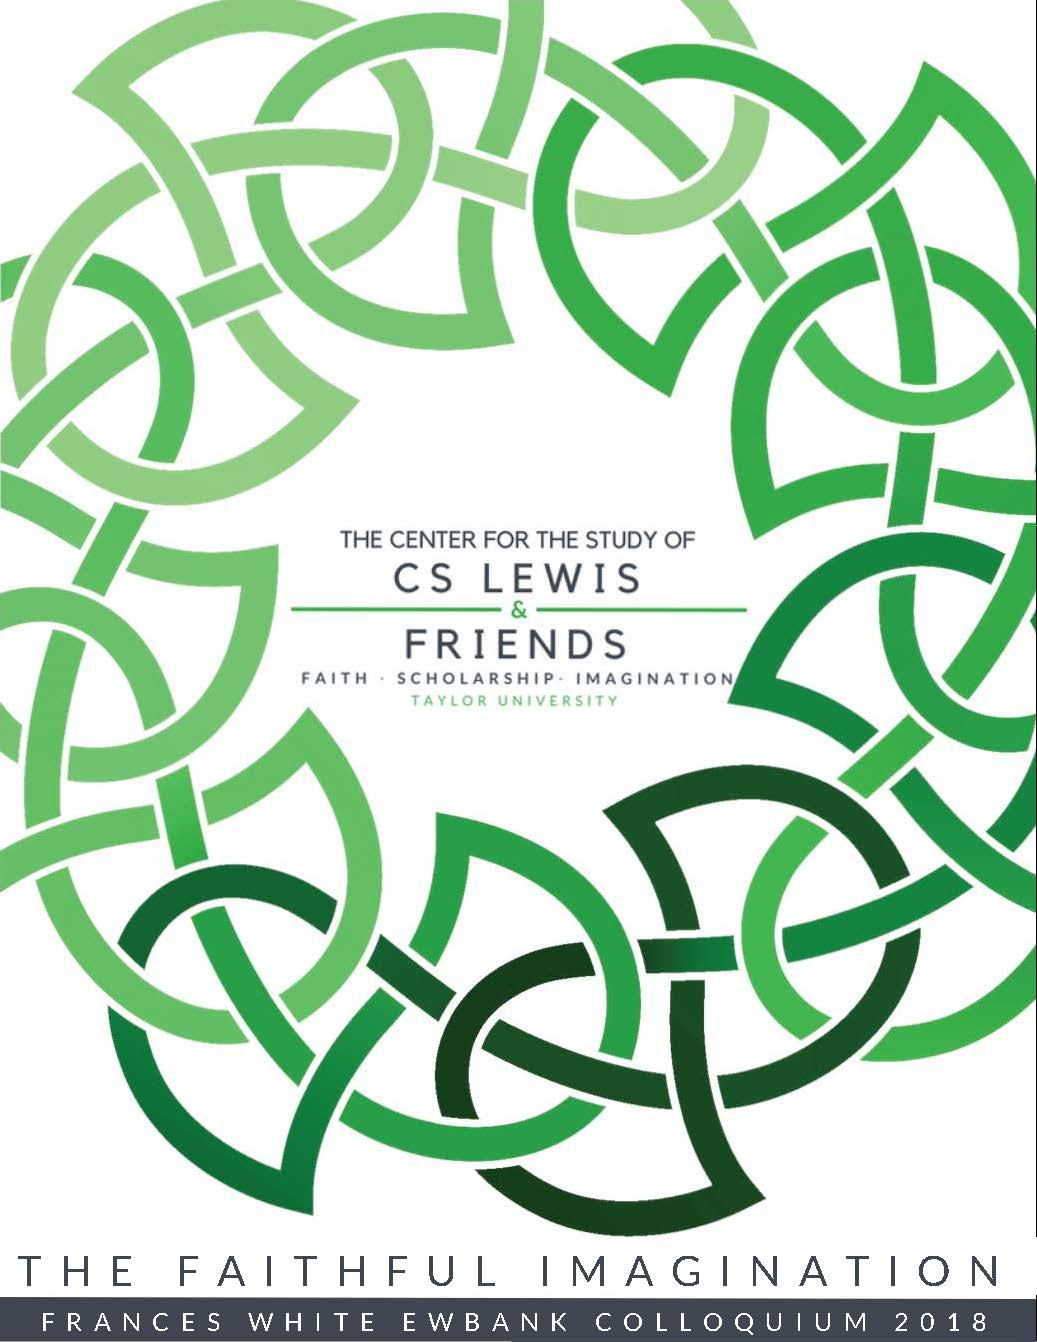 2018: 11th Frances White Ewbank Colloquium on C.S. Lewis & Friends